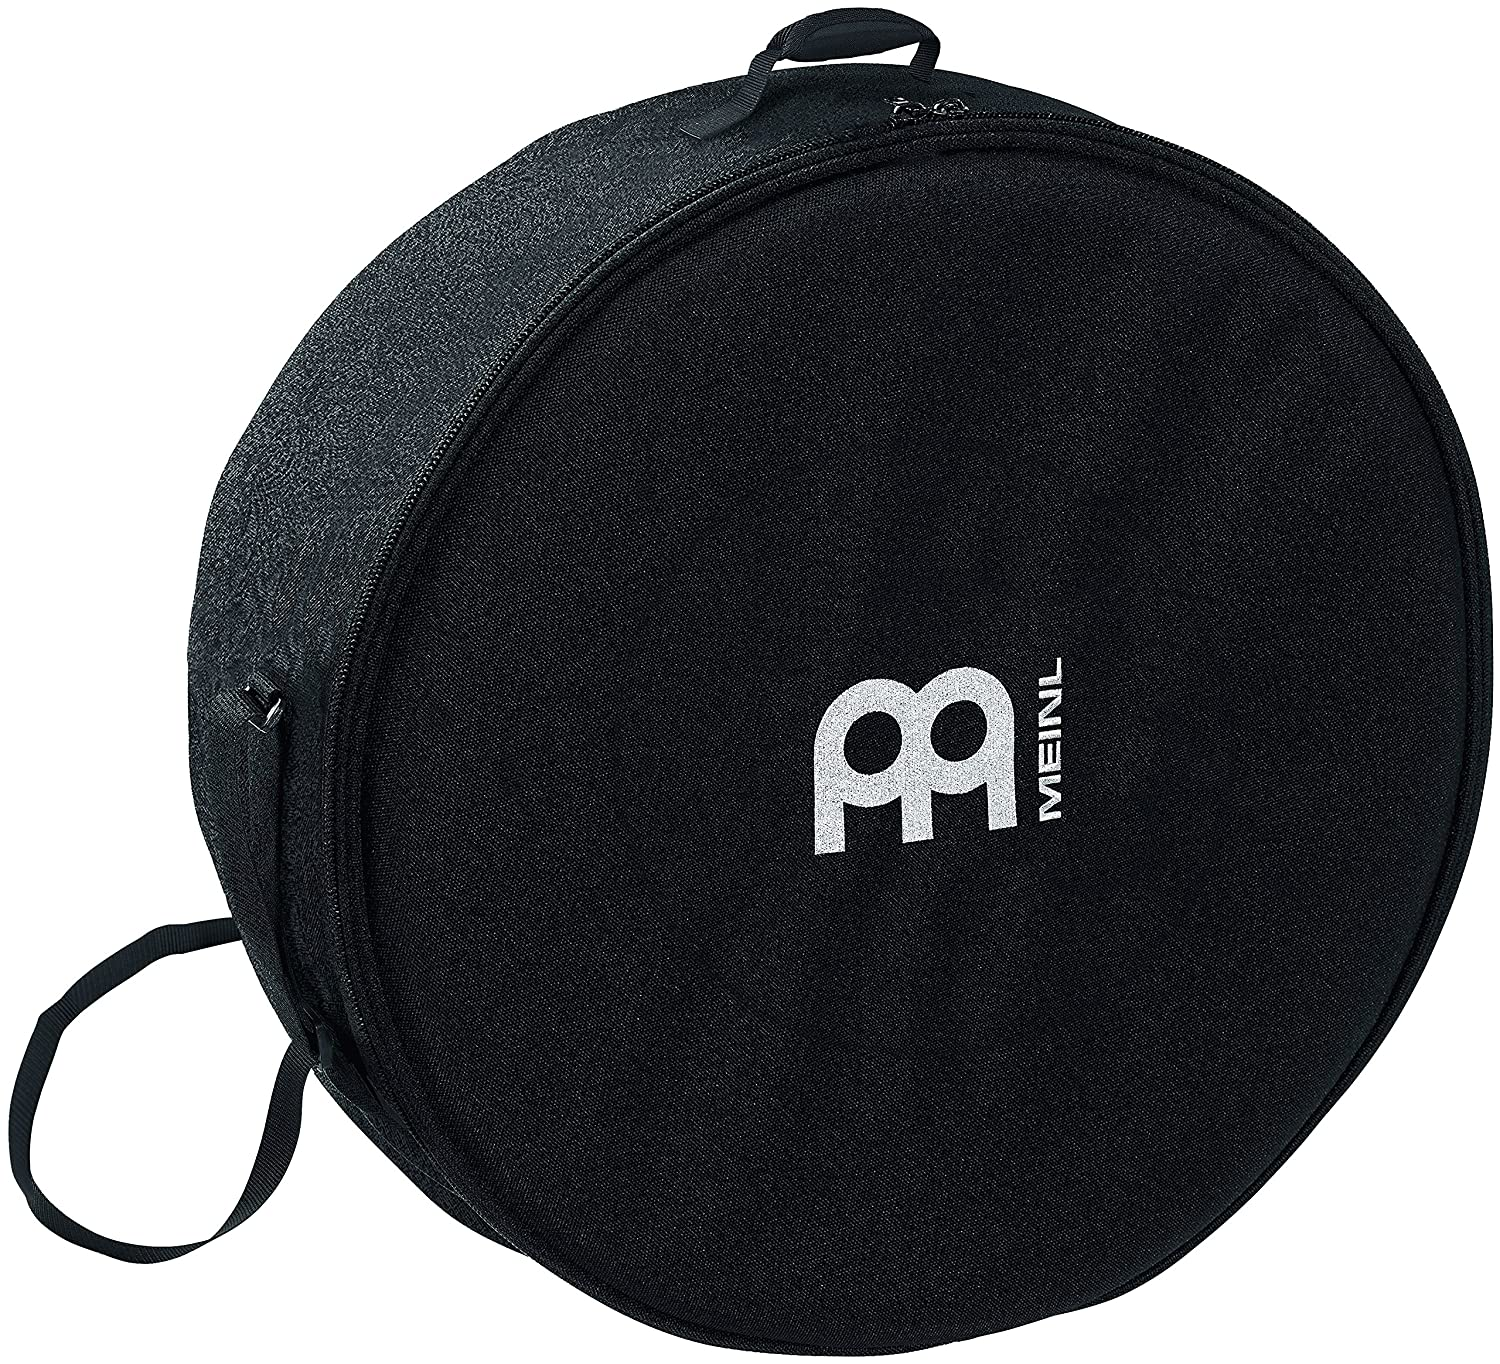 Meinl Percussion MFDB-22-D Professional Deep Frame Drum Bag, 22 x 4-Inch, Black